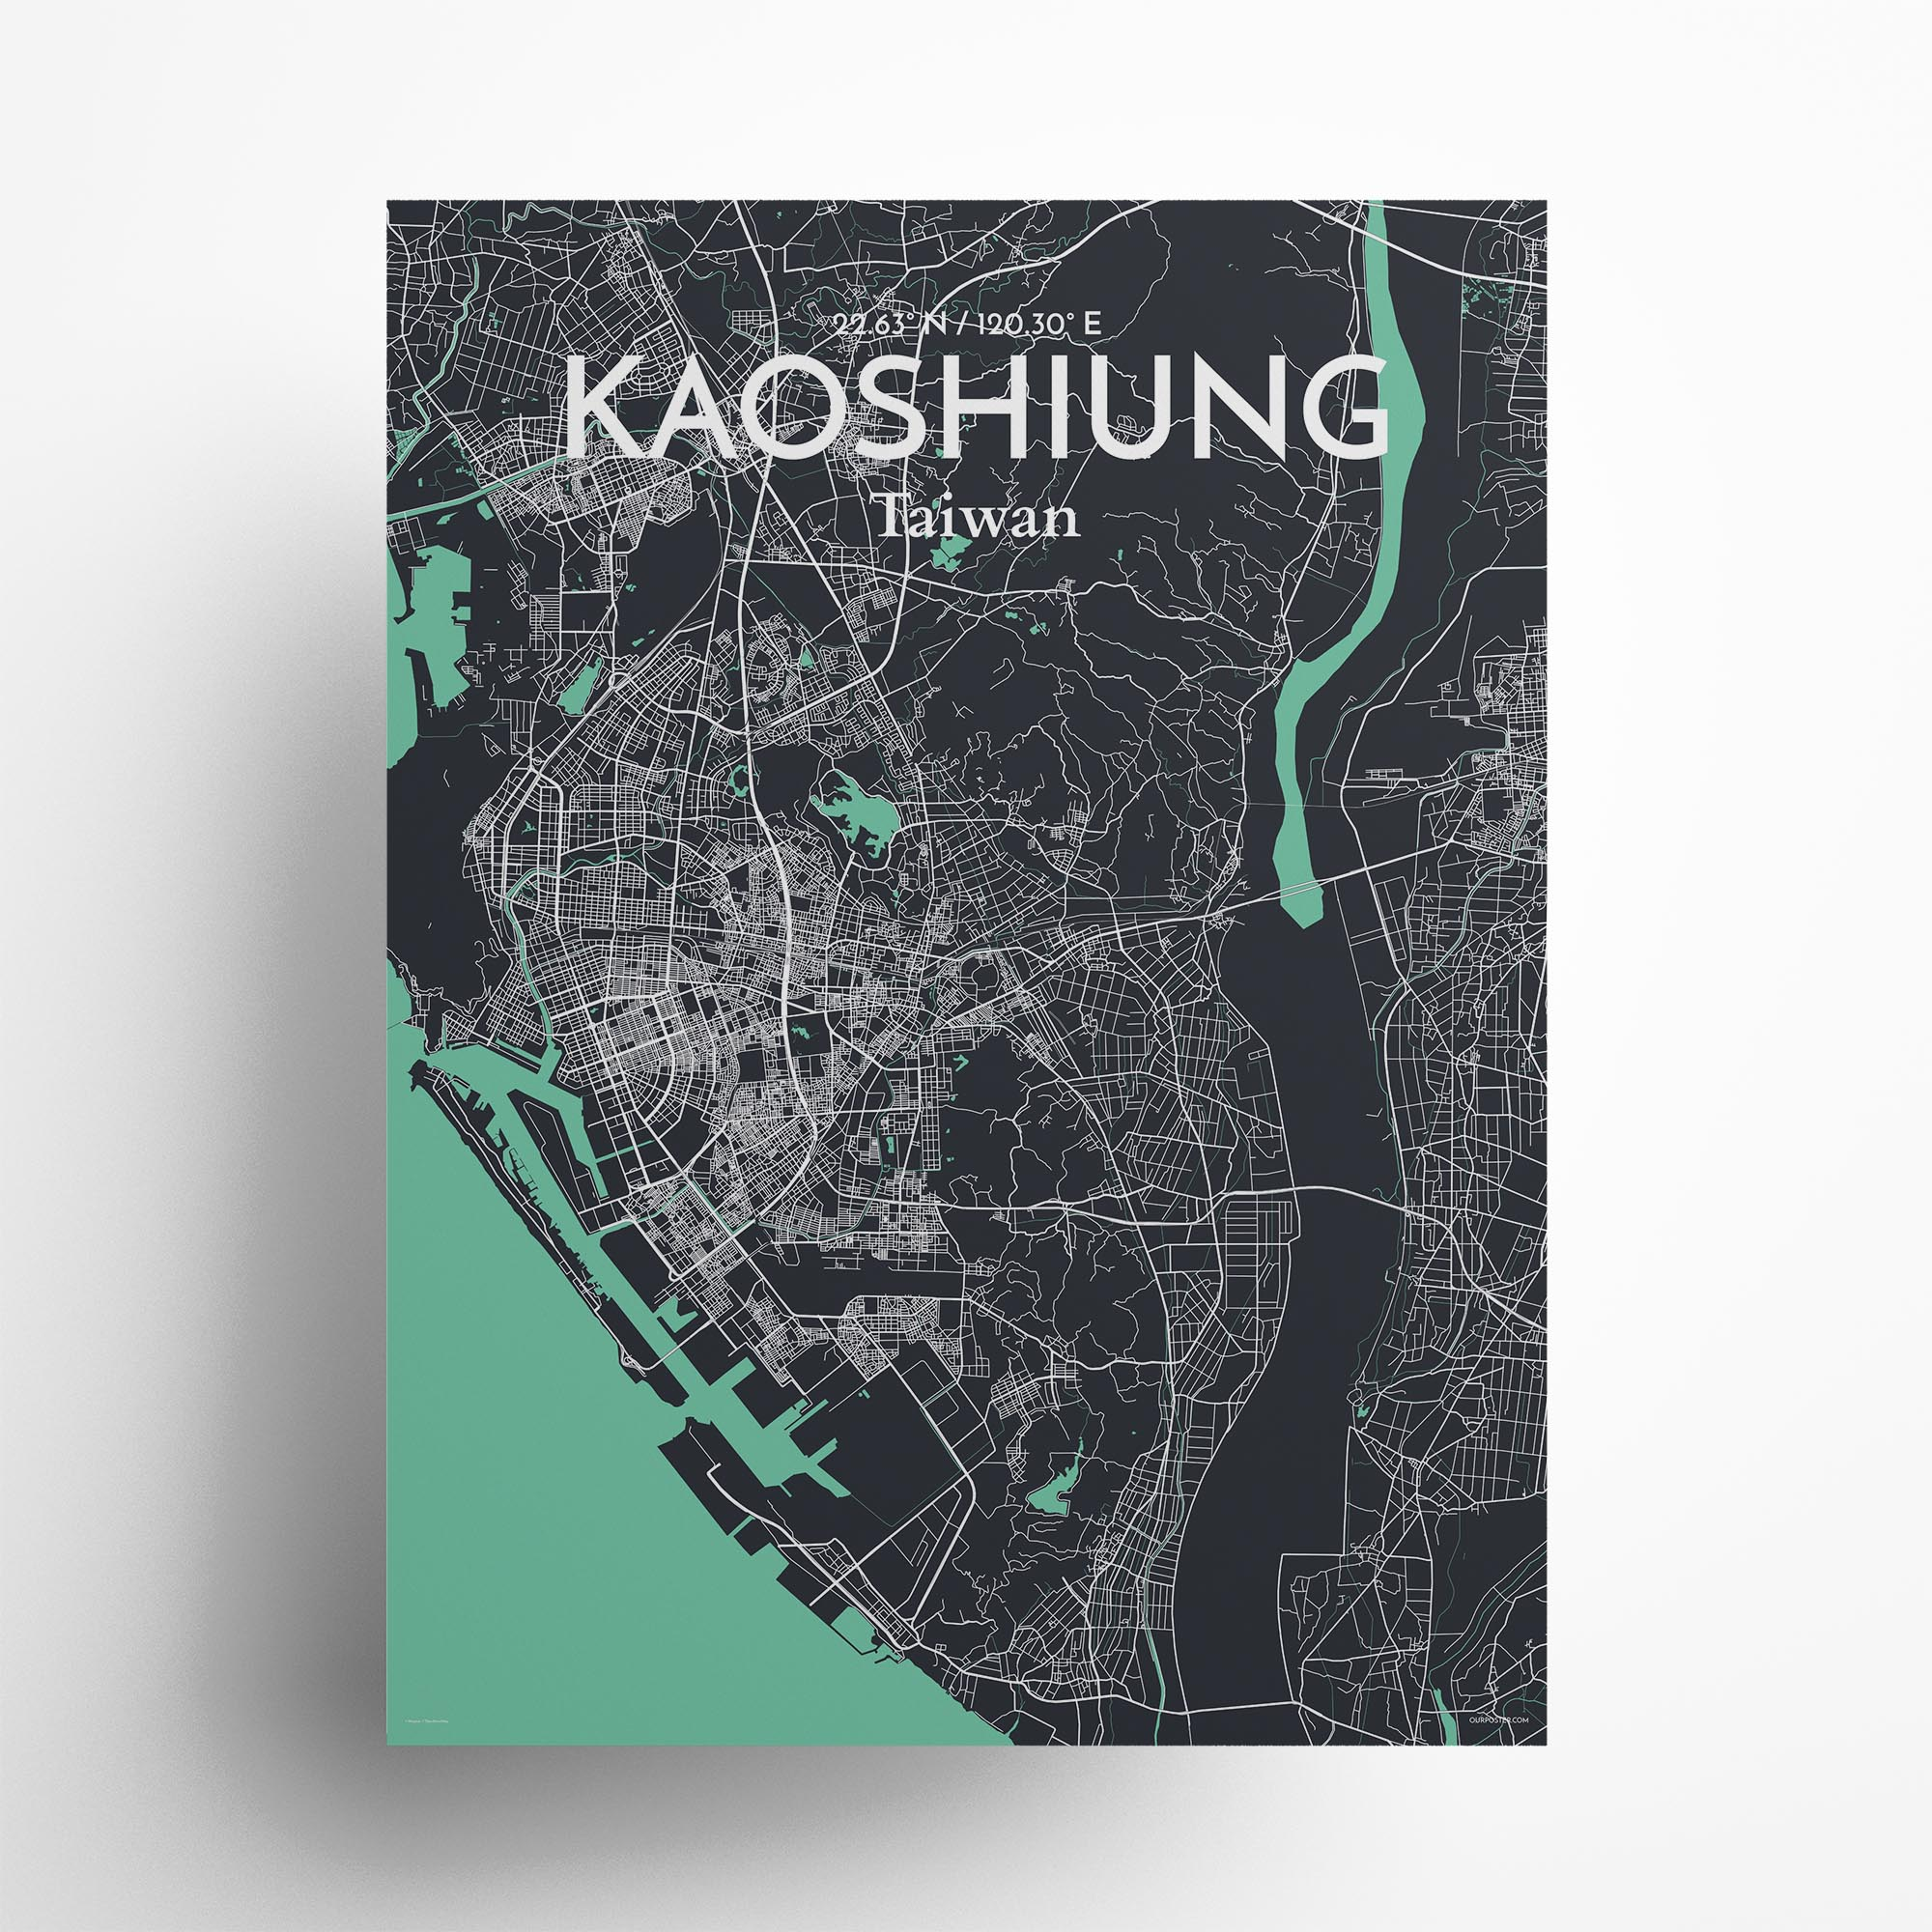 "Kaoshiung city map poster in Dream of size 18"" x 24"""